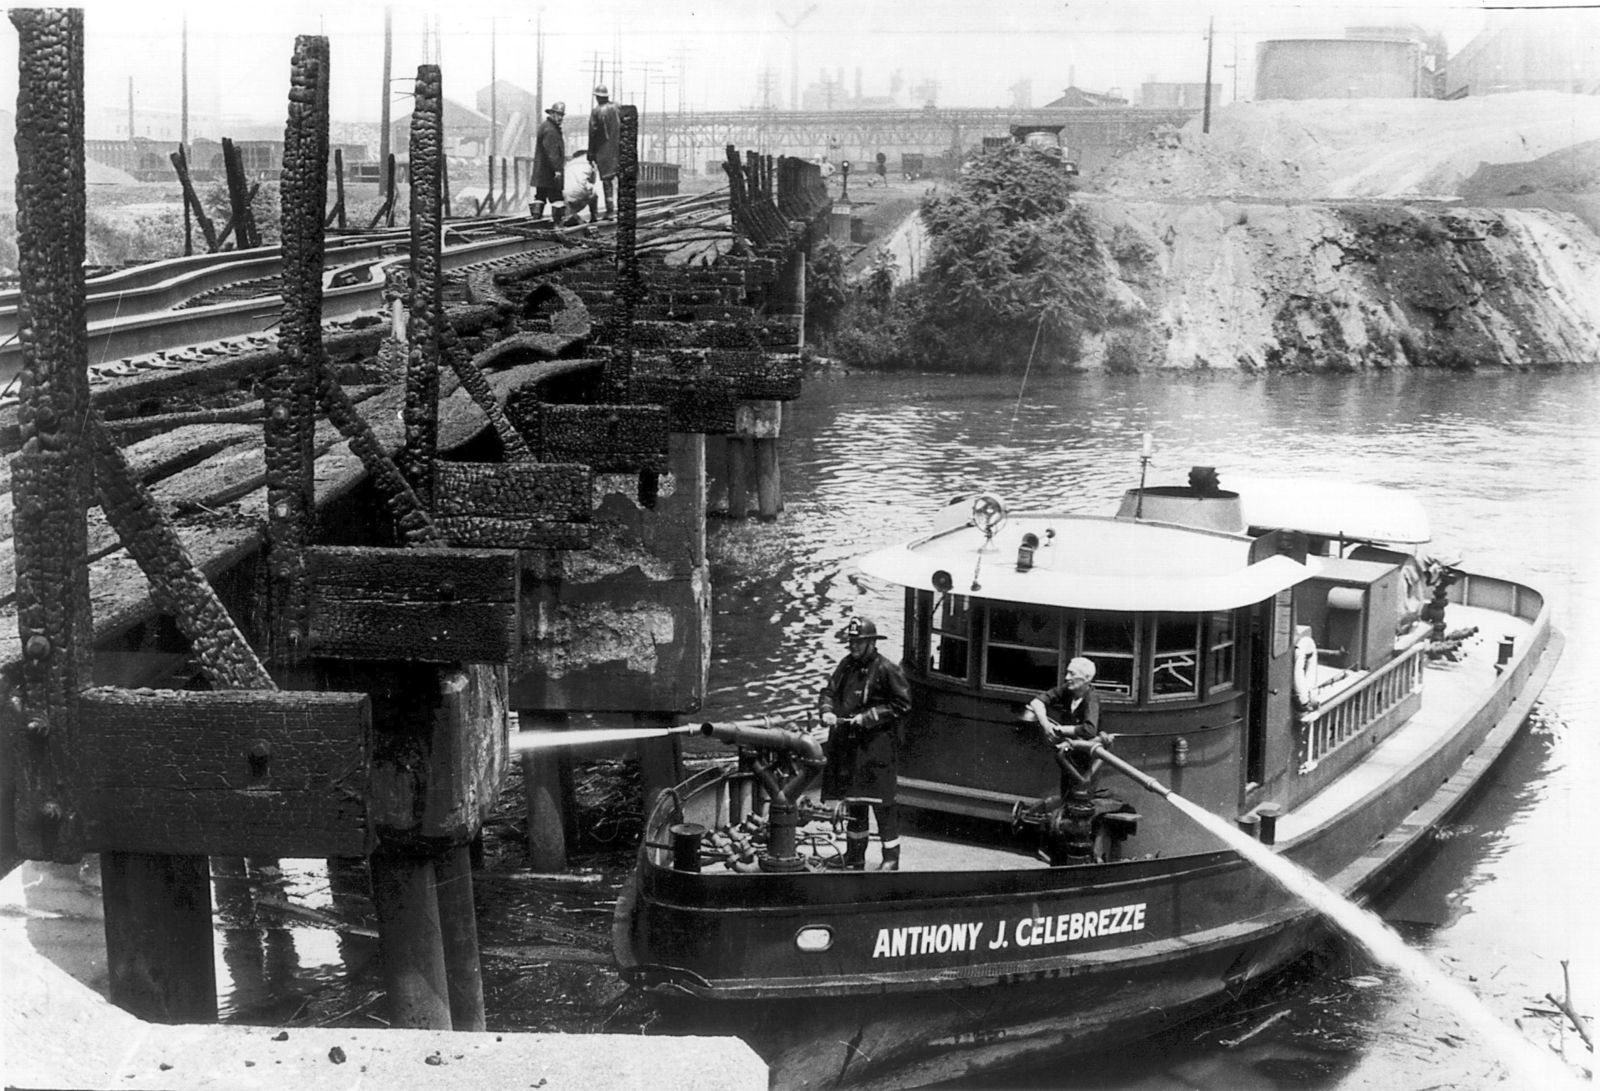 "Cleveland firefighters aboard the Anthony J. Celebrezze fire boat extinguish hot spots on a railroad bridge torched by burning fluids and debris on the Cuyahoga River in 1969, in Cleveland. Fifty years after the Cuyahoga River's famous fire, a plucky new generation of Cleveland artists and entrepreneurs has turned the old jokes about the ""mistake on the lake"" into inspiration and forged the decades of embarrassment into a fiery brand of local pride. (Mitchell Zaremba/The Plain Dealer via AP)"